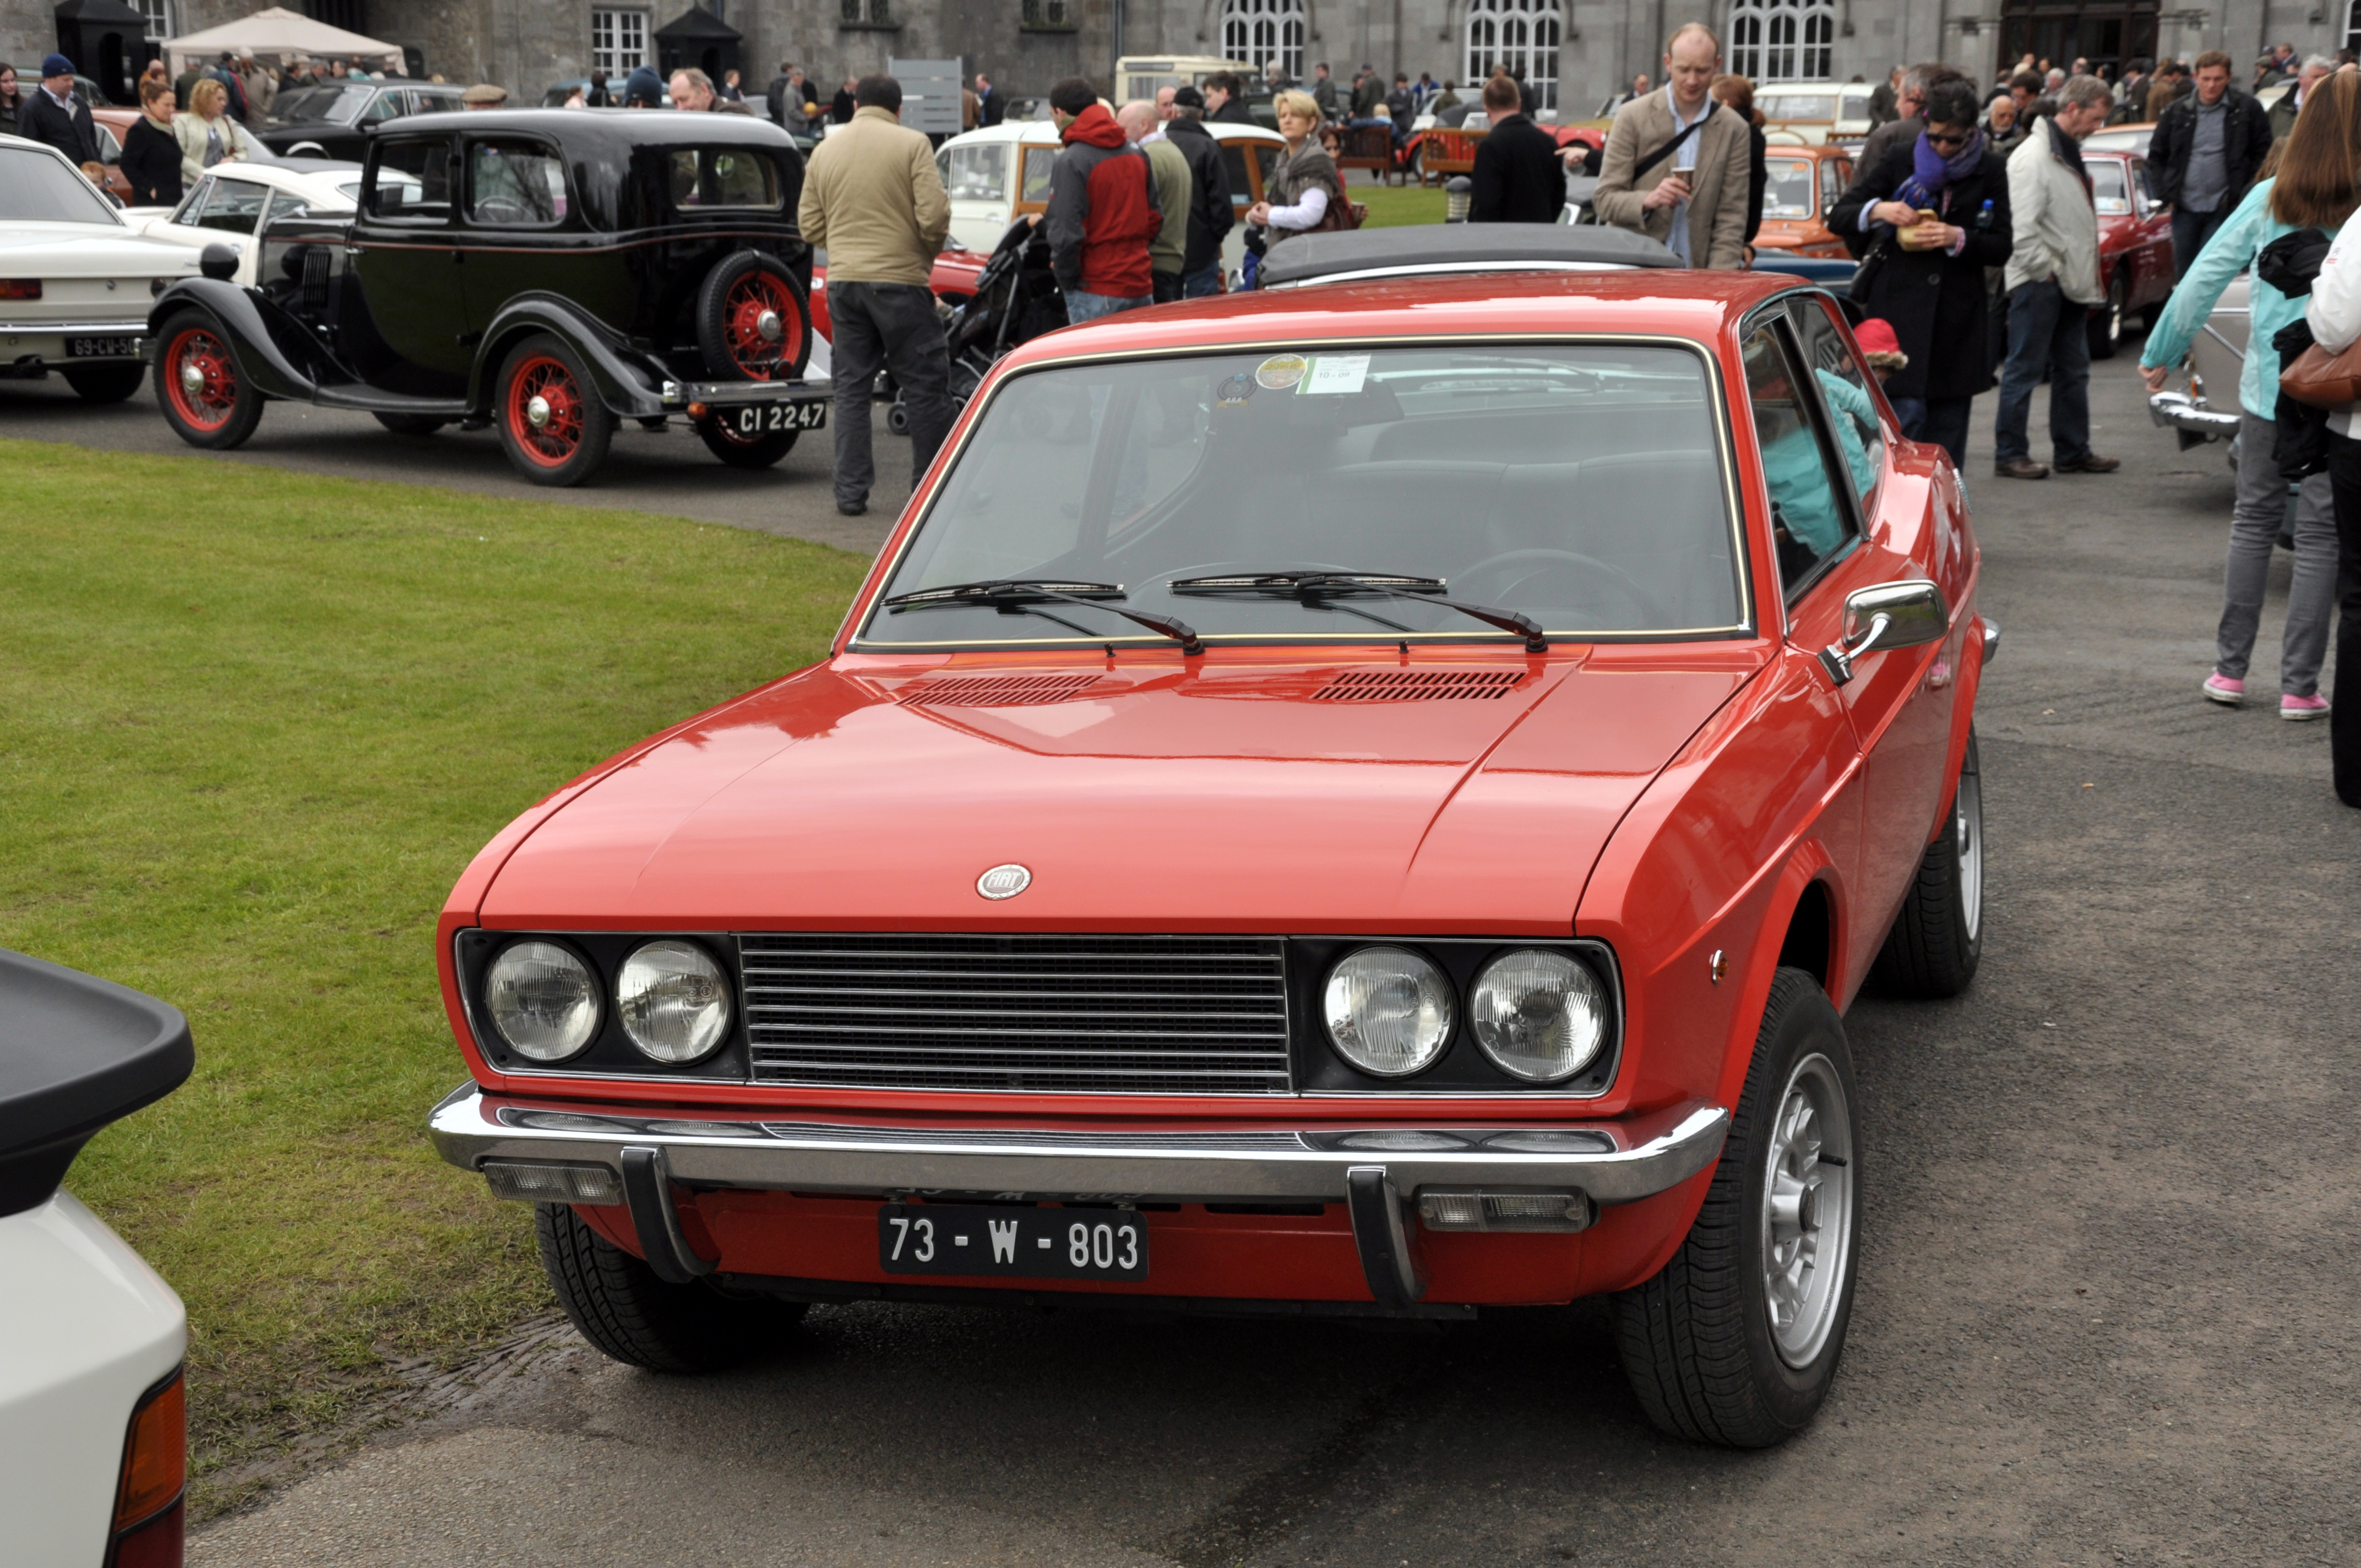 File:FIat 128 Coupe (1).jpg - Wikimedia Commons